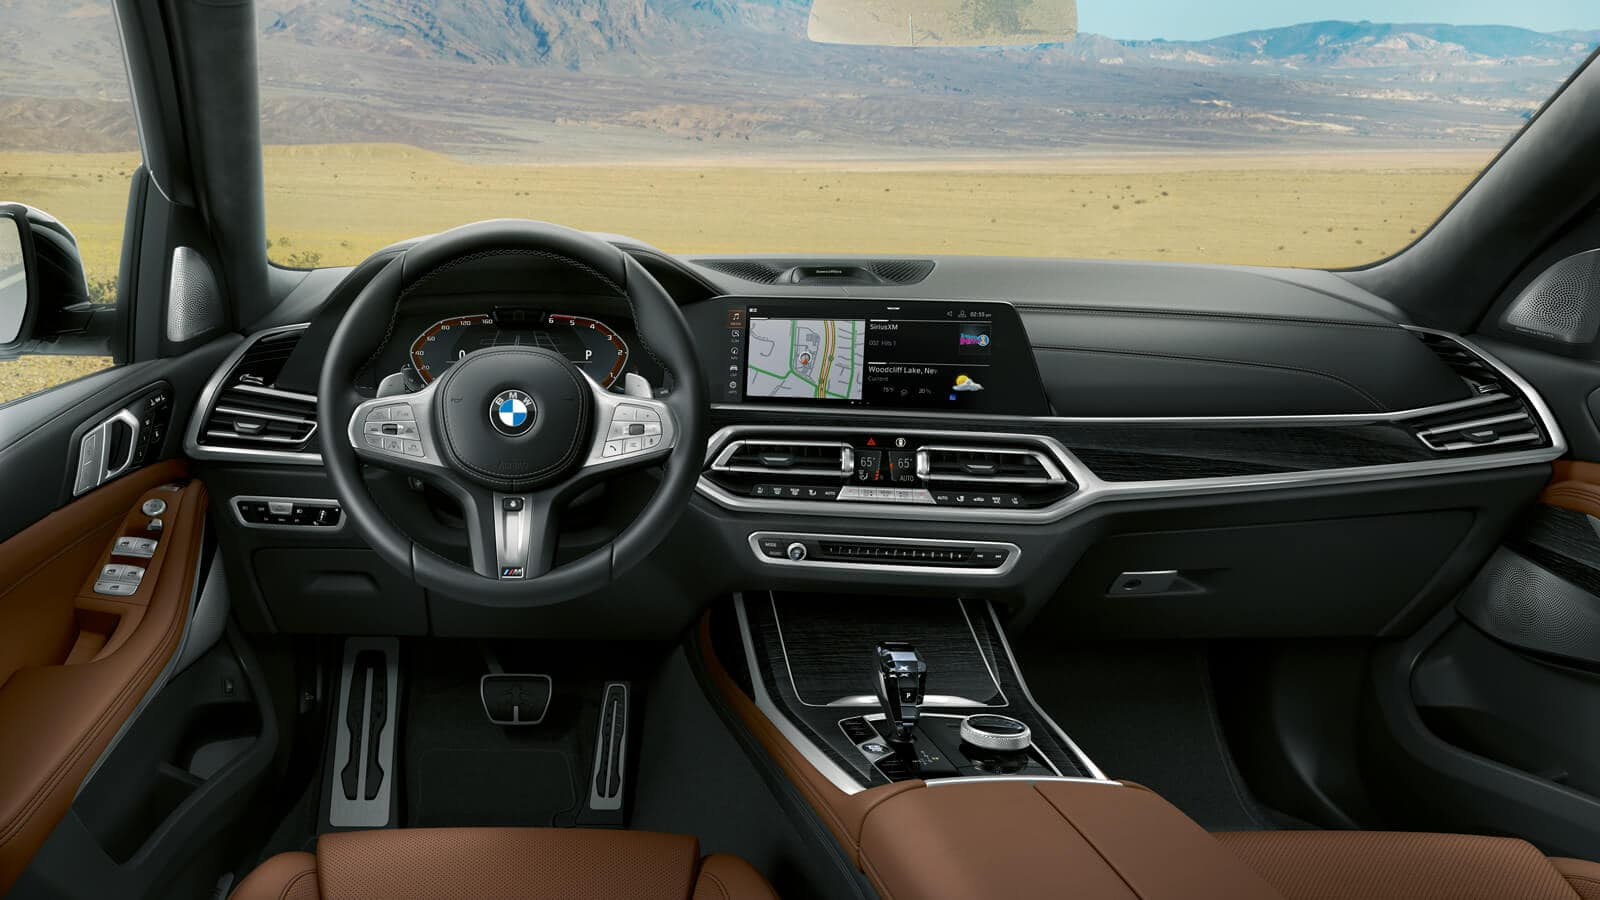 Interior of the 2019 BMW X7